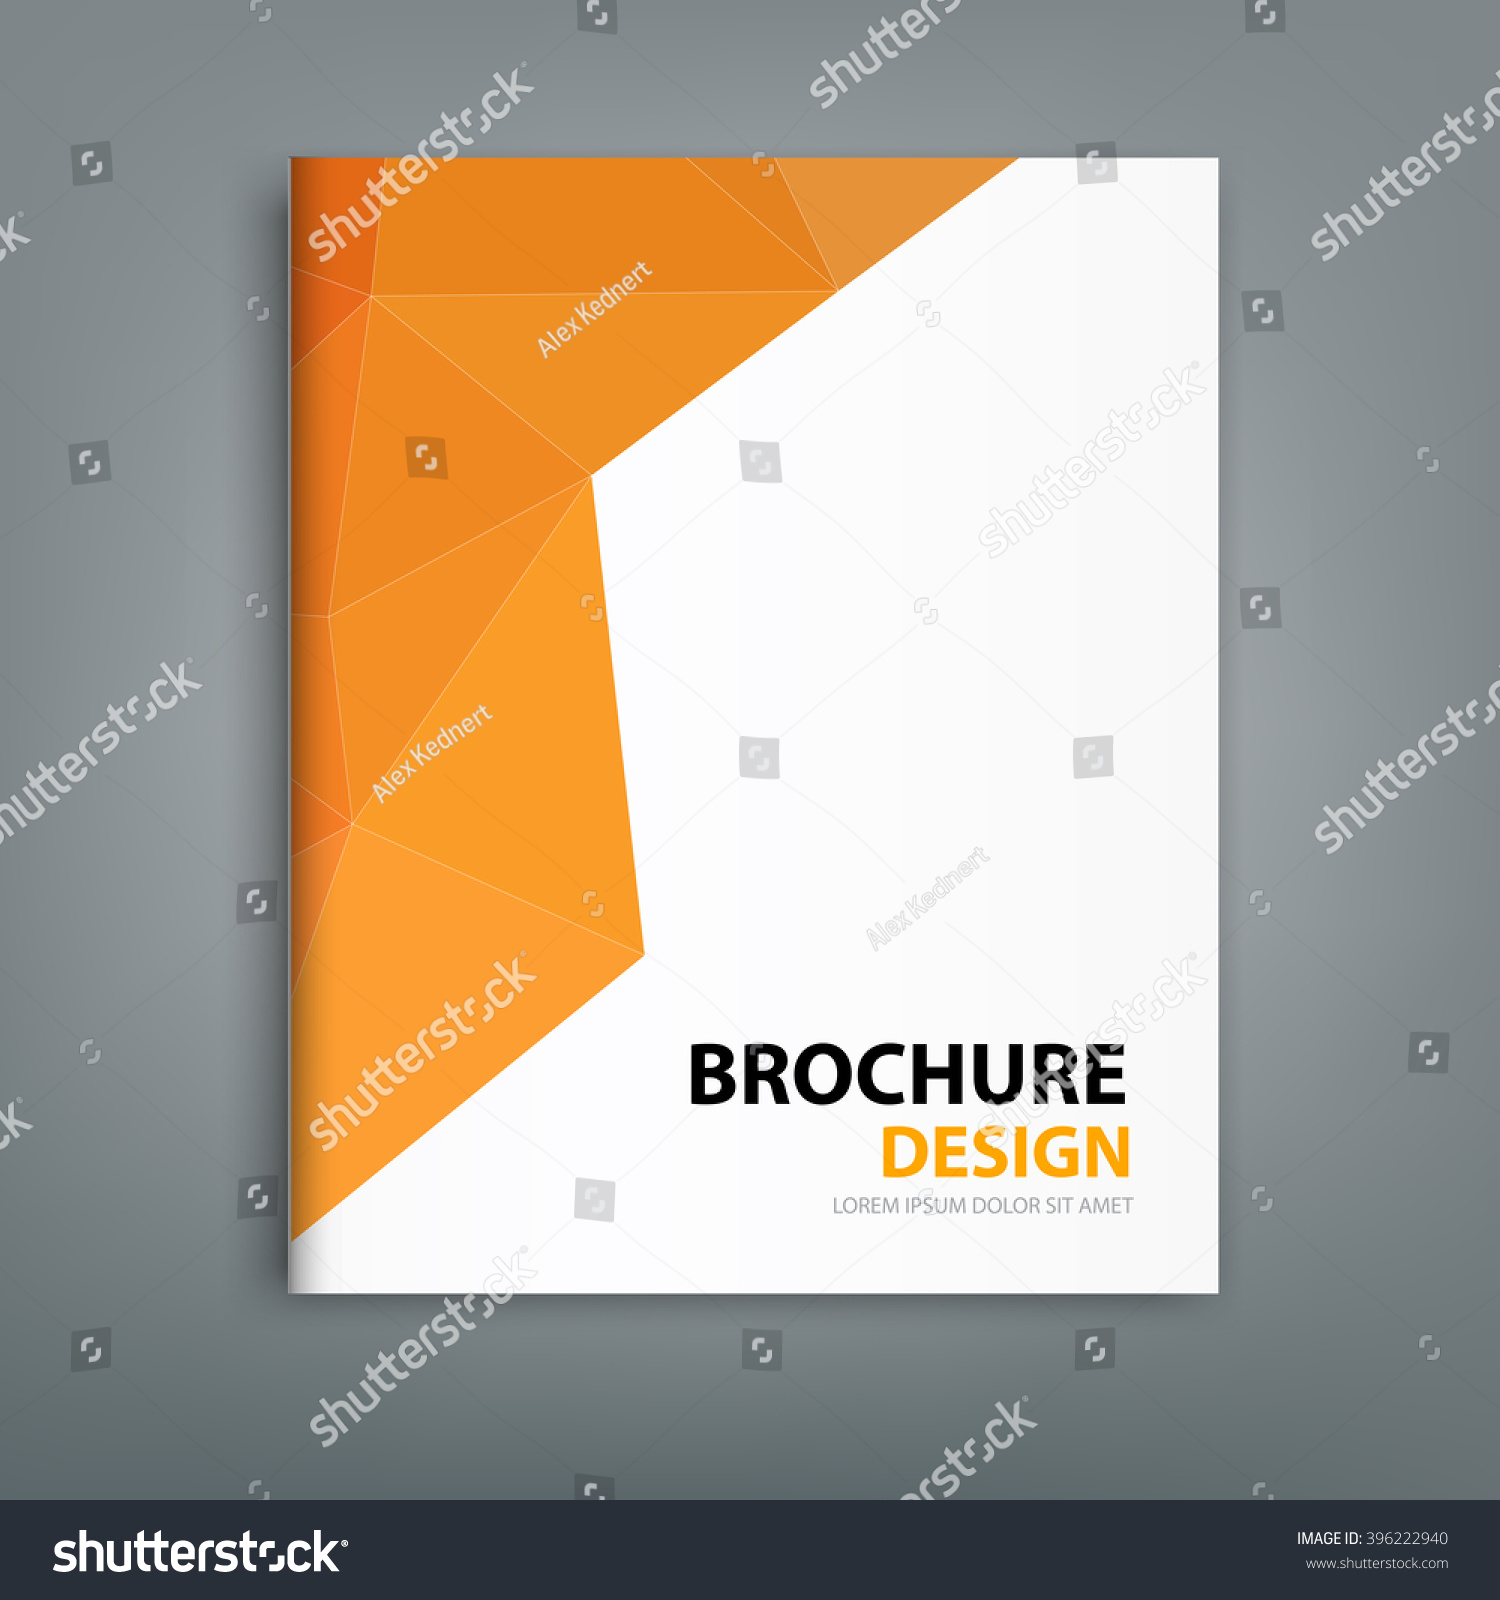 modern brochure cover design background professional stock vector modern brochure cover design background professional book in poligonal style design for your next